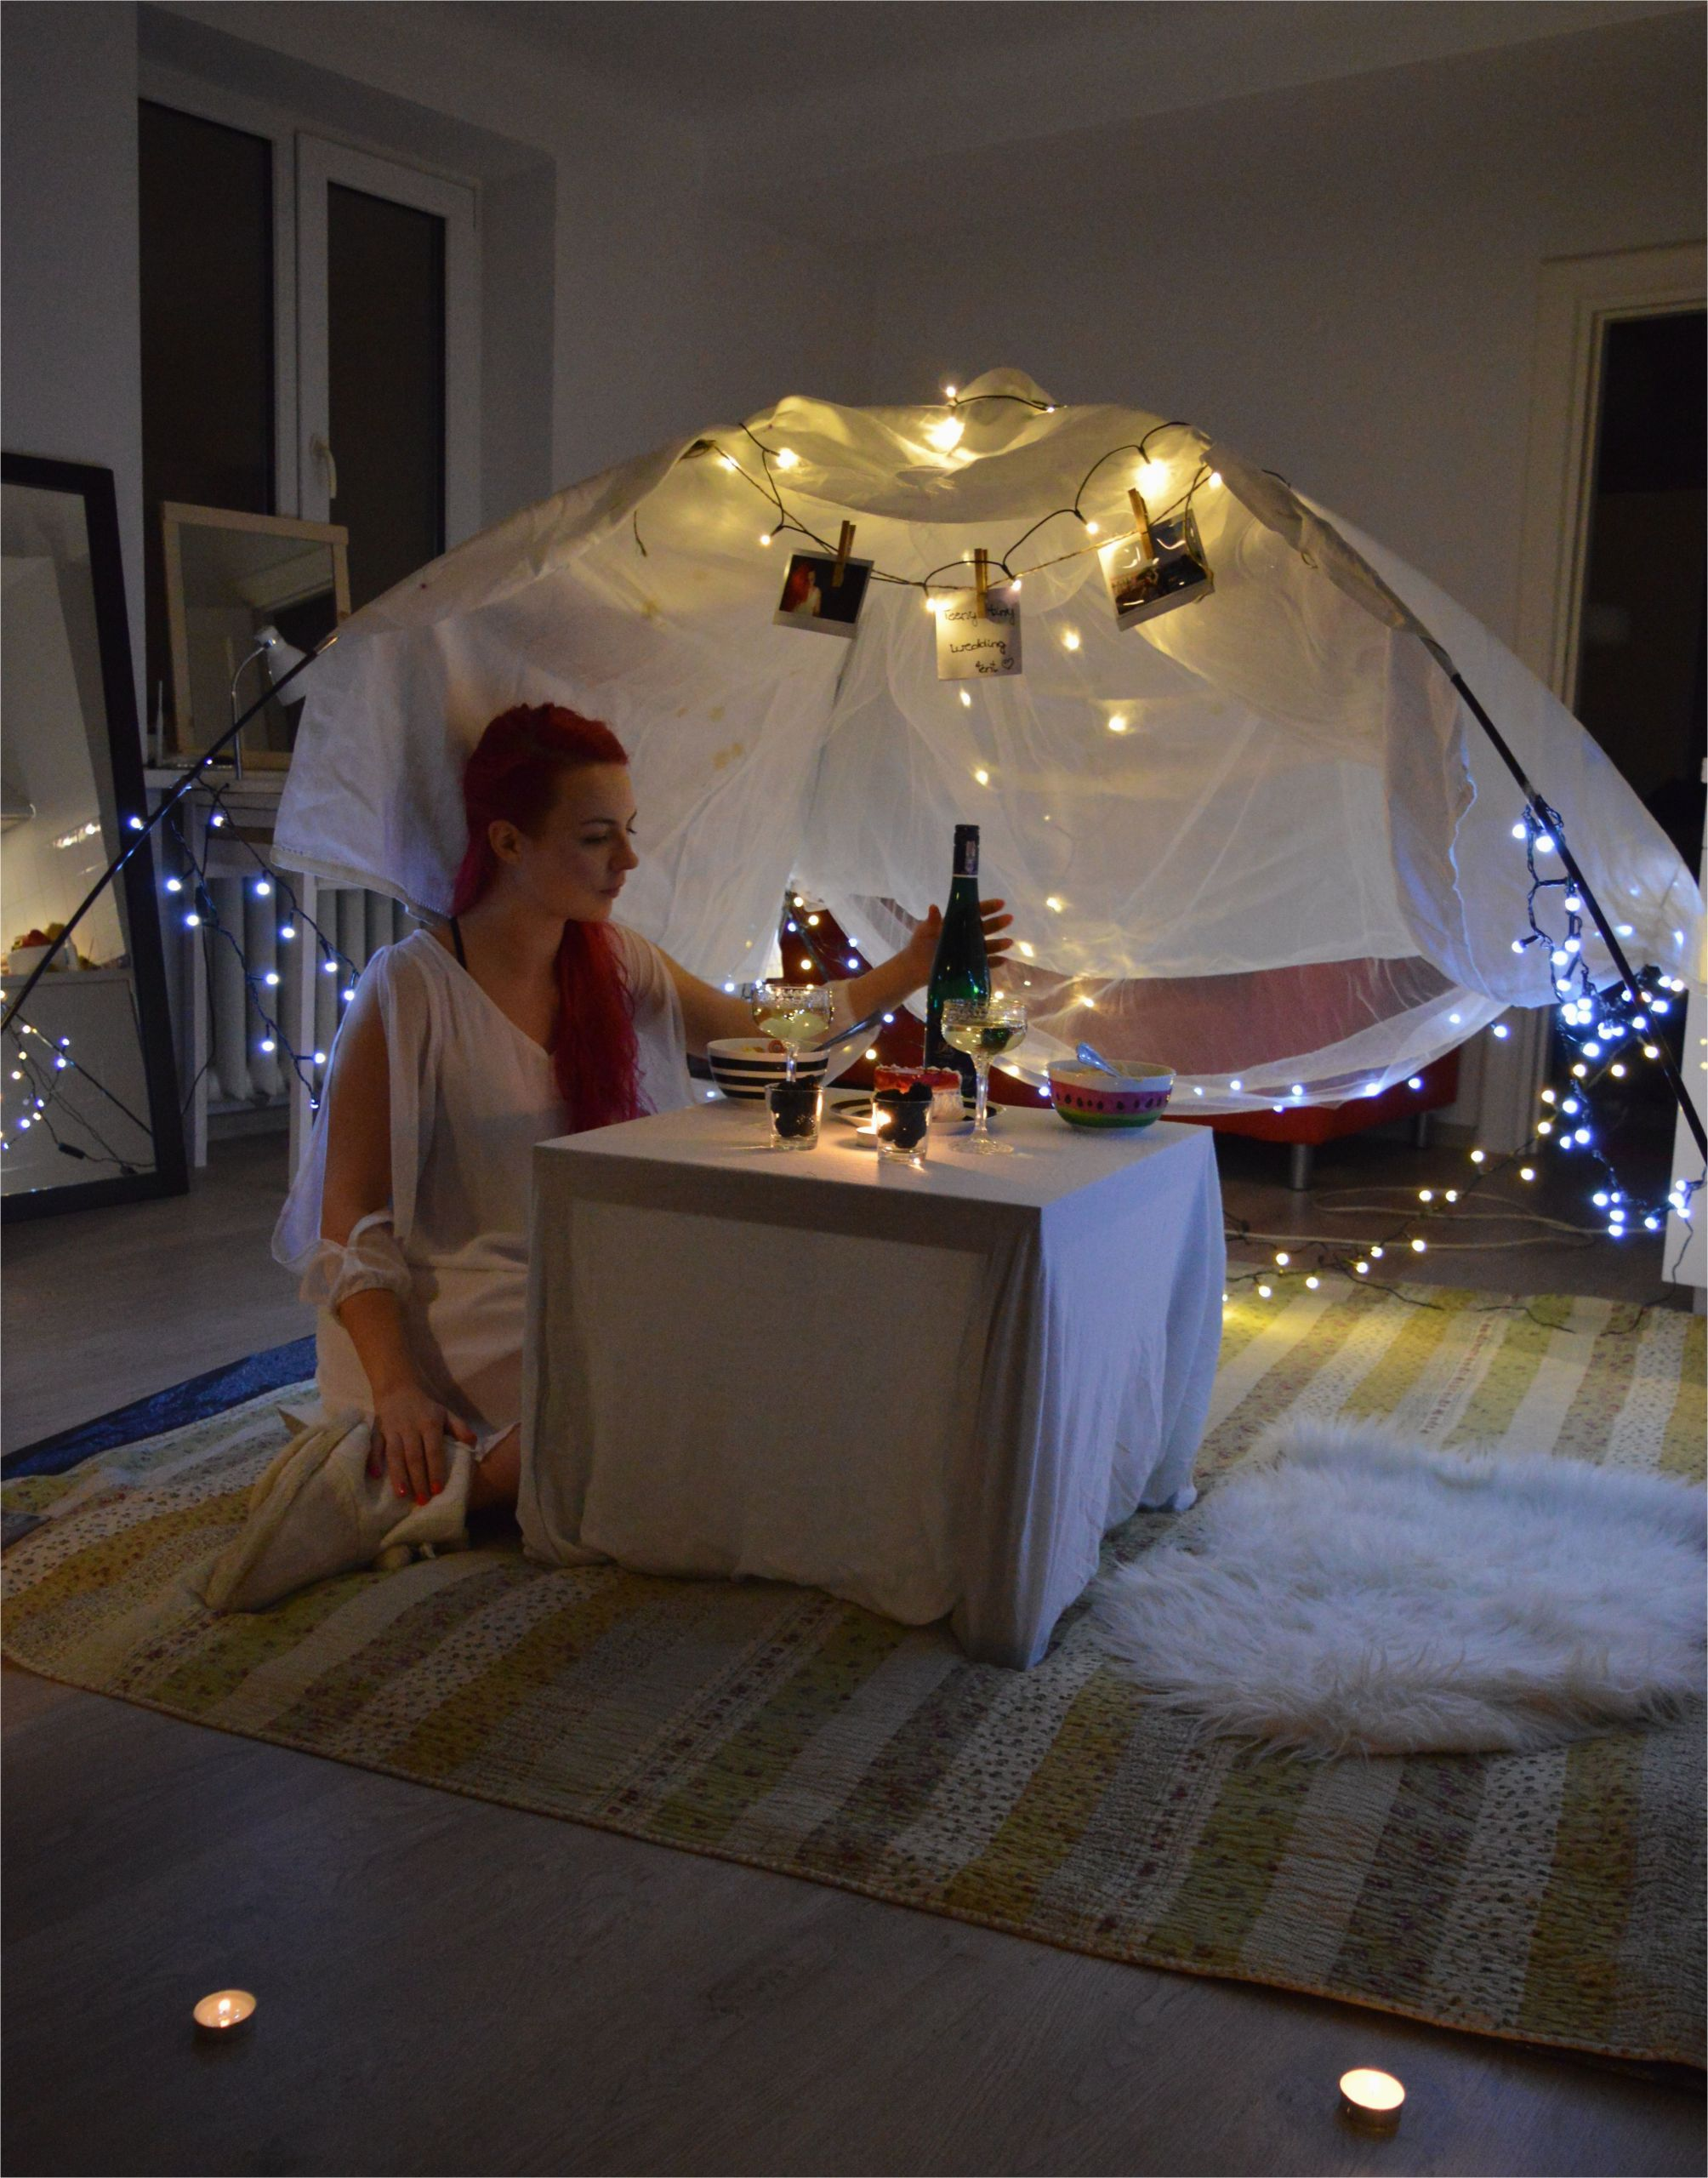 Outdoor Birthday Gifts for Him Cozy Romantic Surprise Birthday Dinner In the Tent at Home